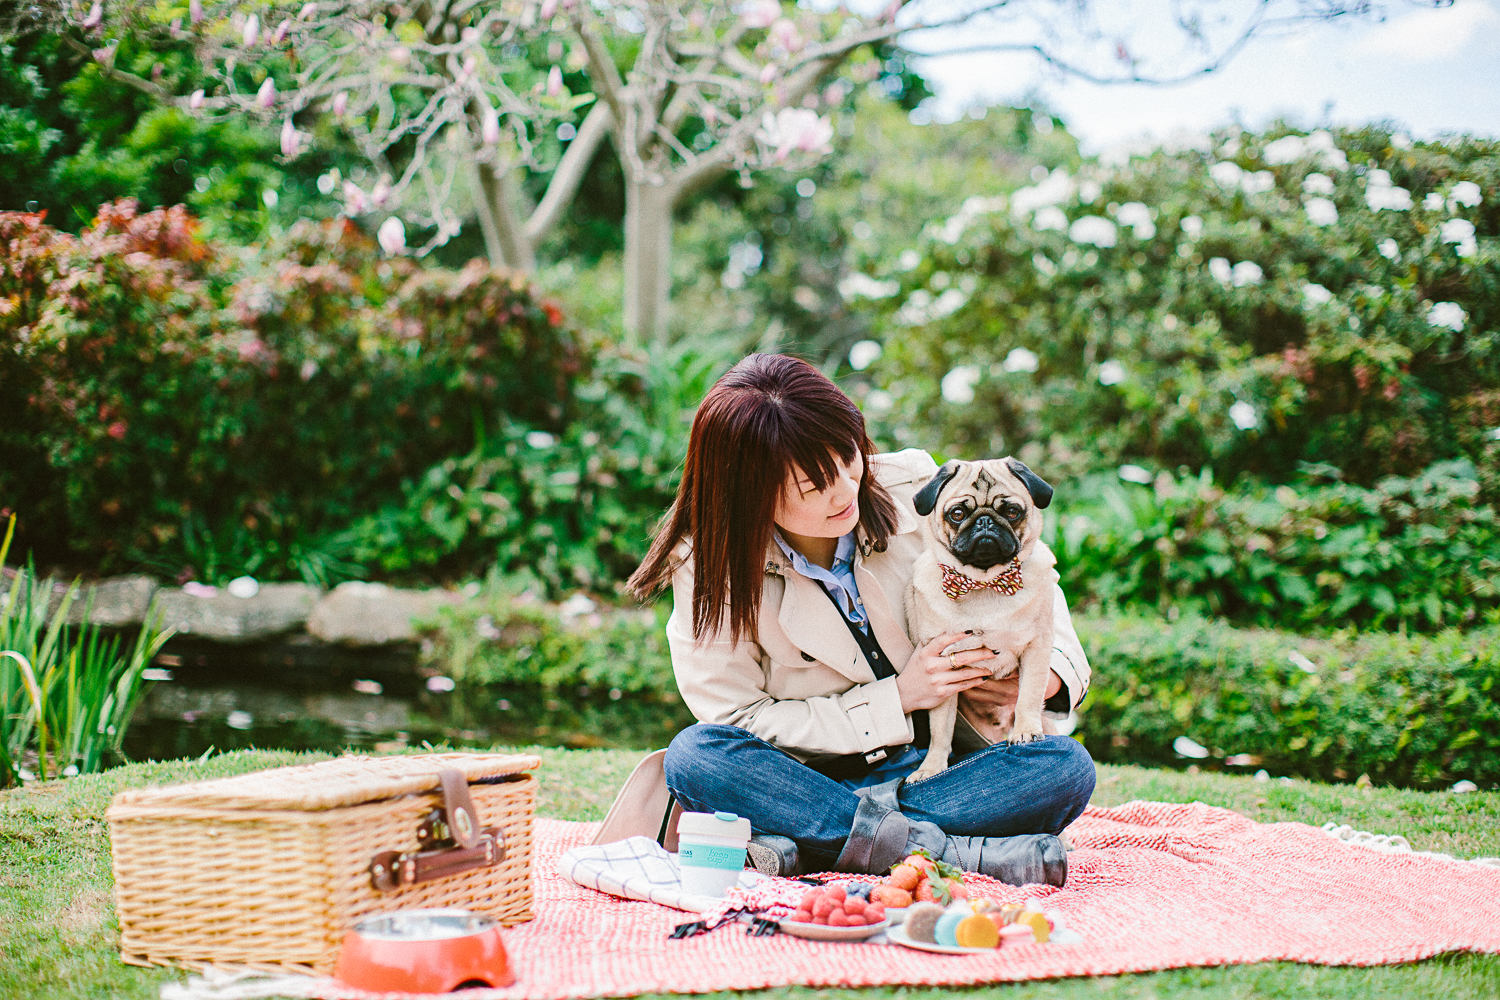 twoguineapigs_pet_photography_oh_jaffa_picnic_pugs_1500-8.jpg